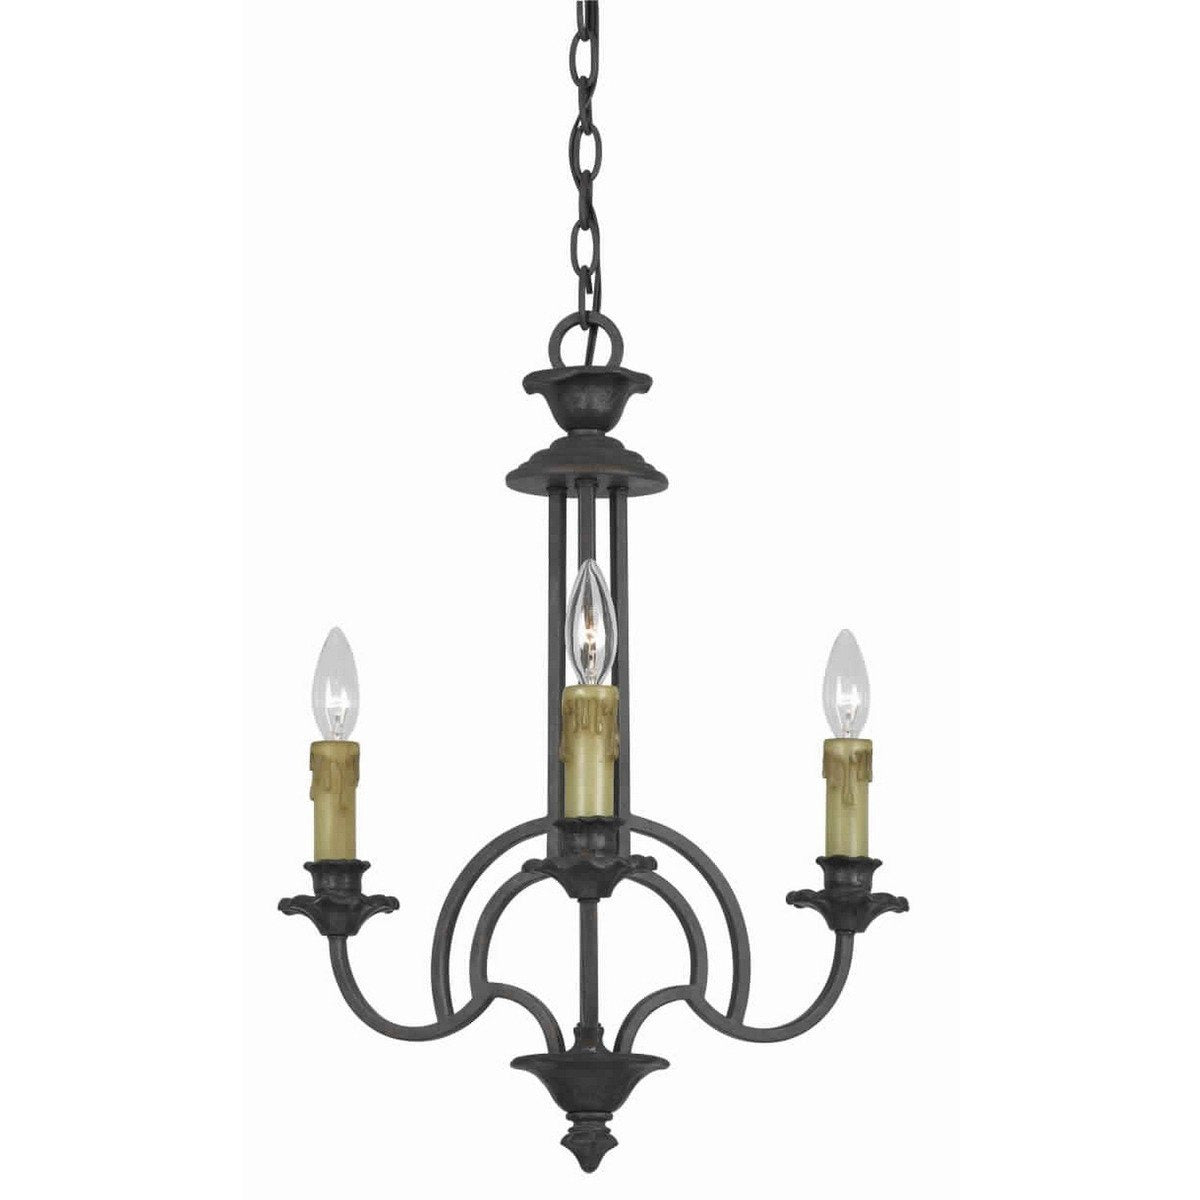 Chandeliers & Pendants - 3 Bulb Candle Style Uplight Chandelier With Metal Frame, Black And Brass